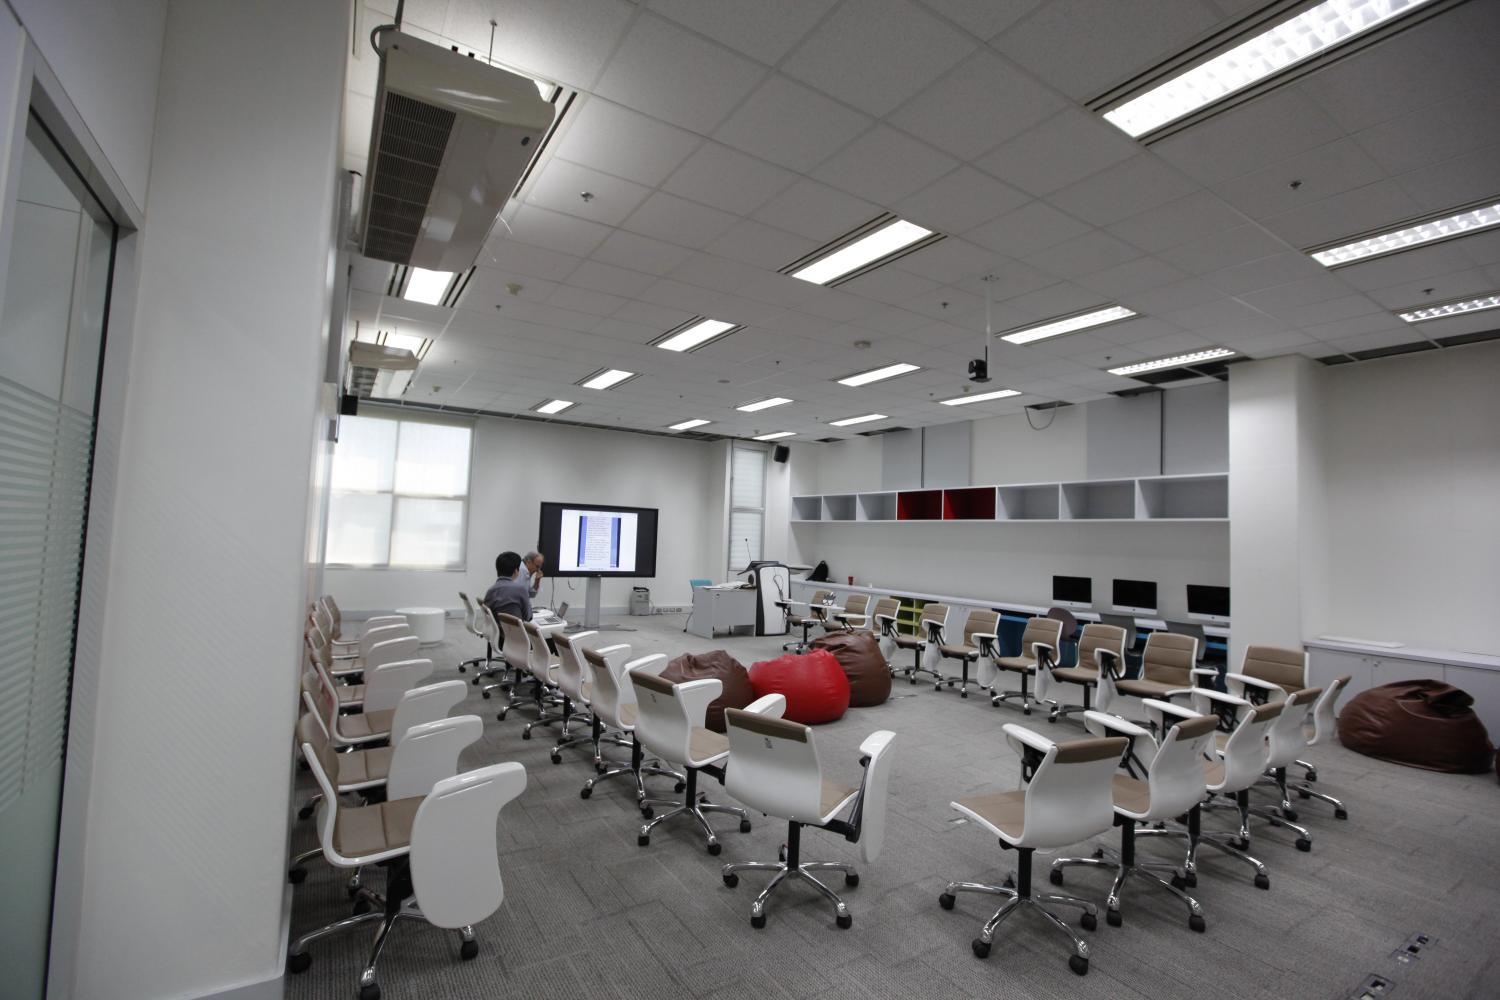 A new learning space employing technology as a tool for teaching at Bangkok University's Rangsit campus. (Photo by Pattanapong Hirunard)